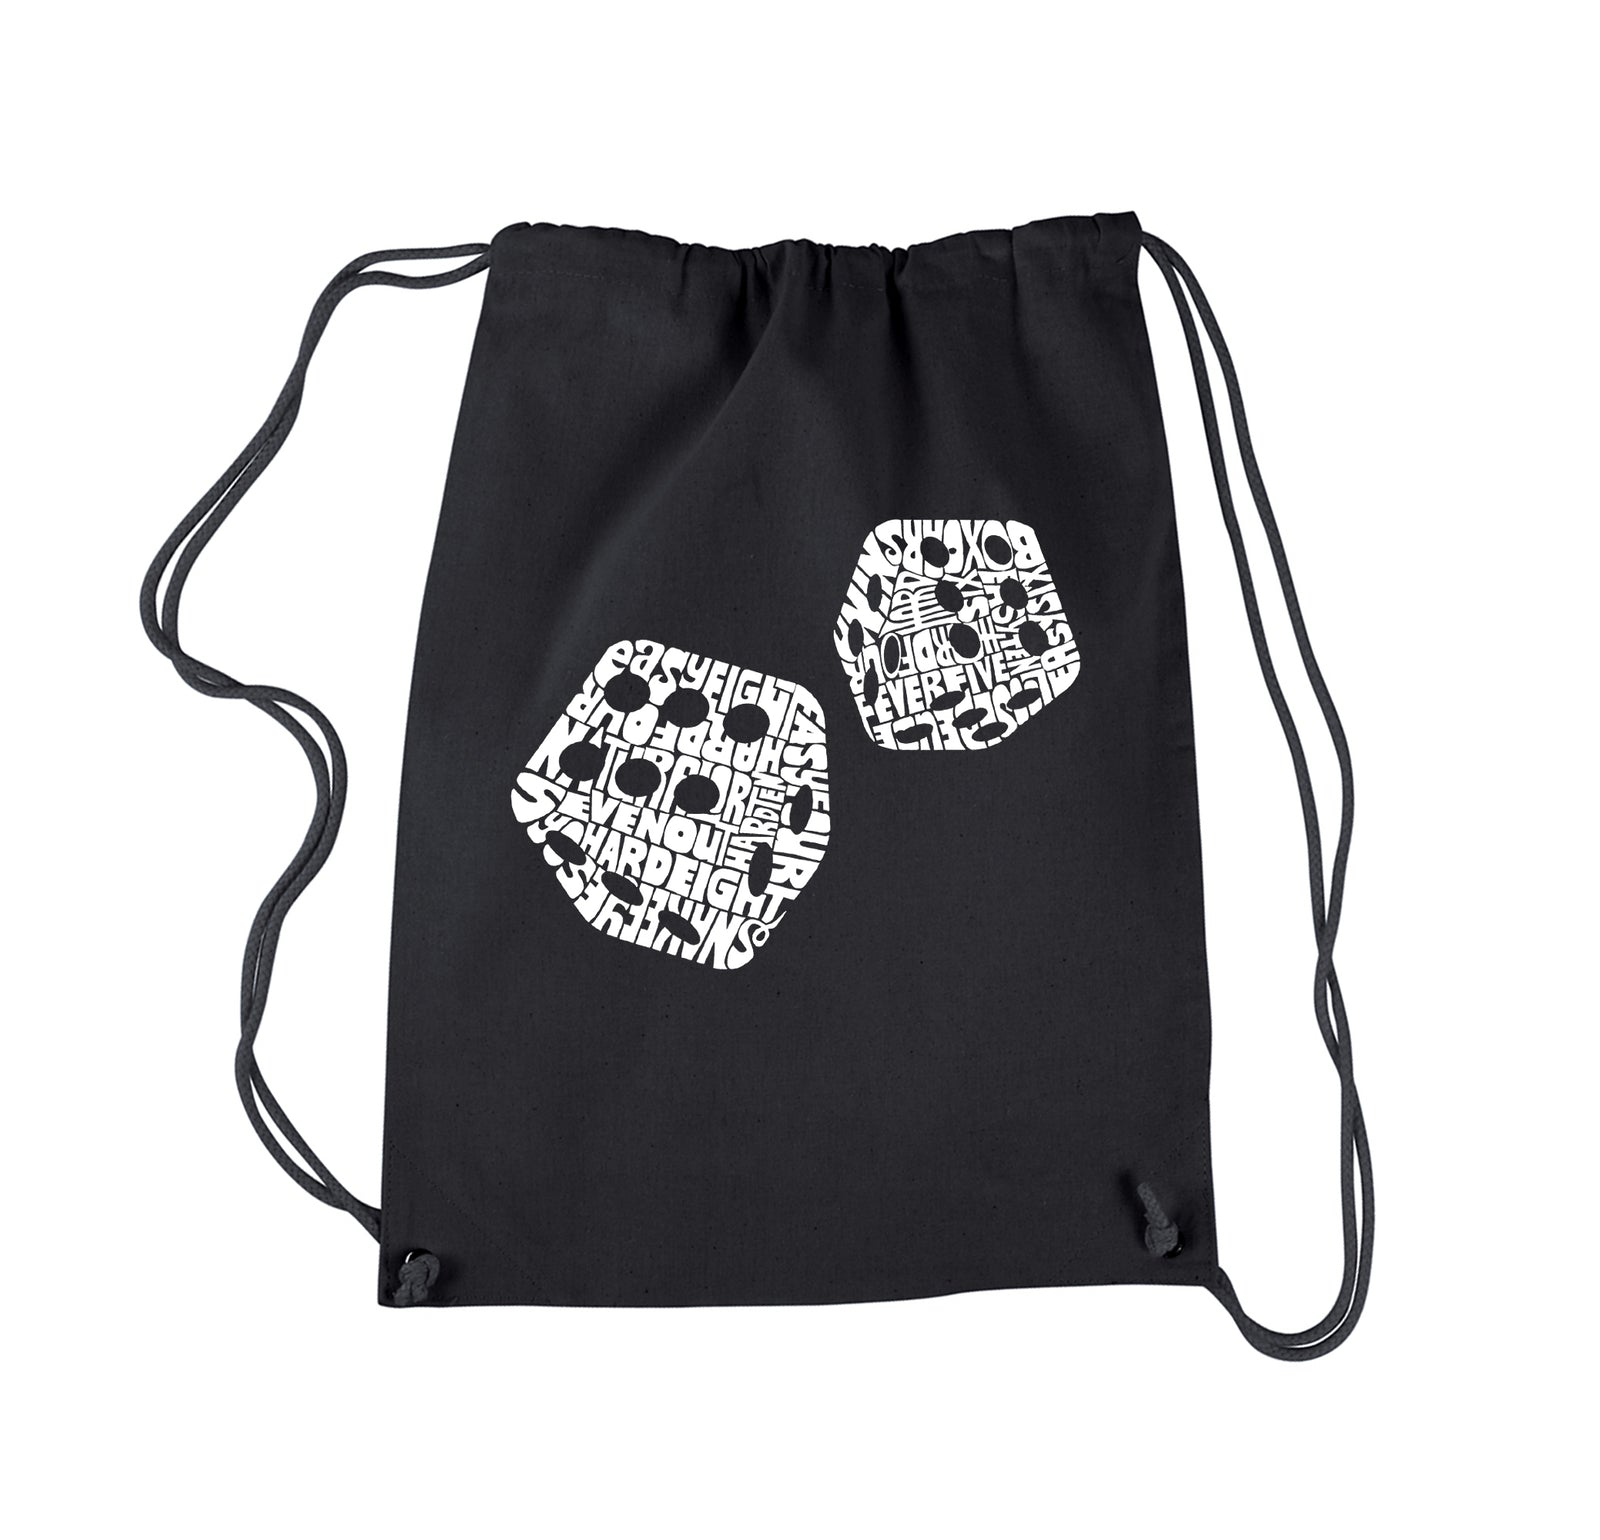 Drawstring Backpack - DIFFERENT ROLLS THROWN IN THE GAME OF CRAPS